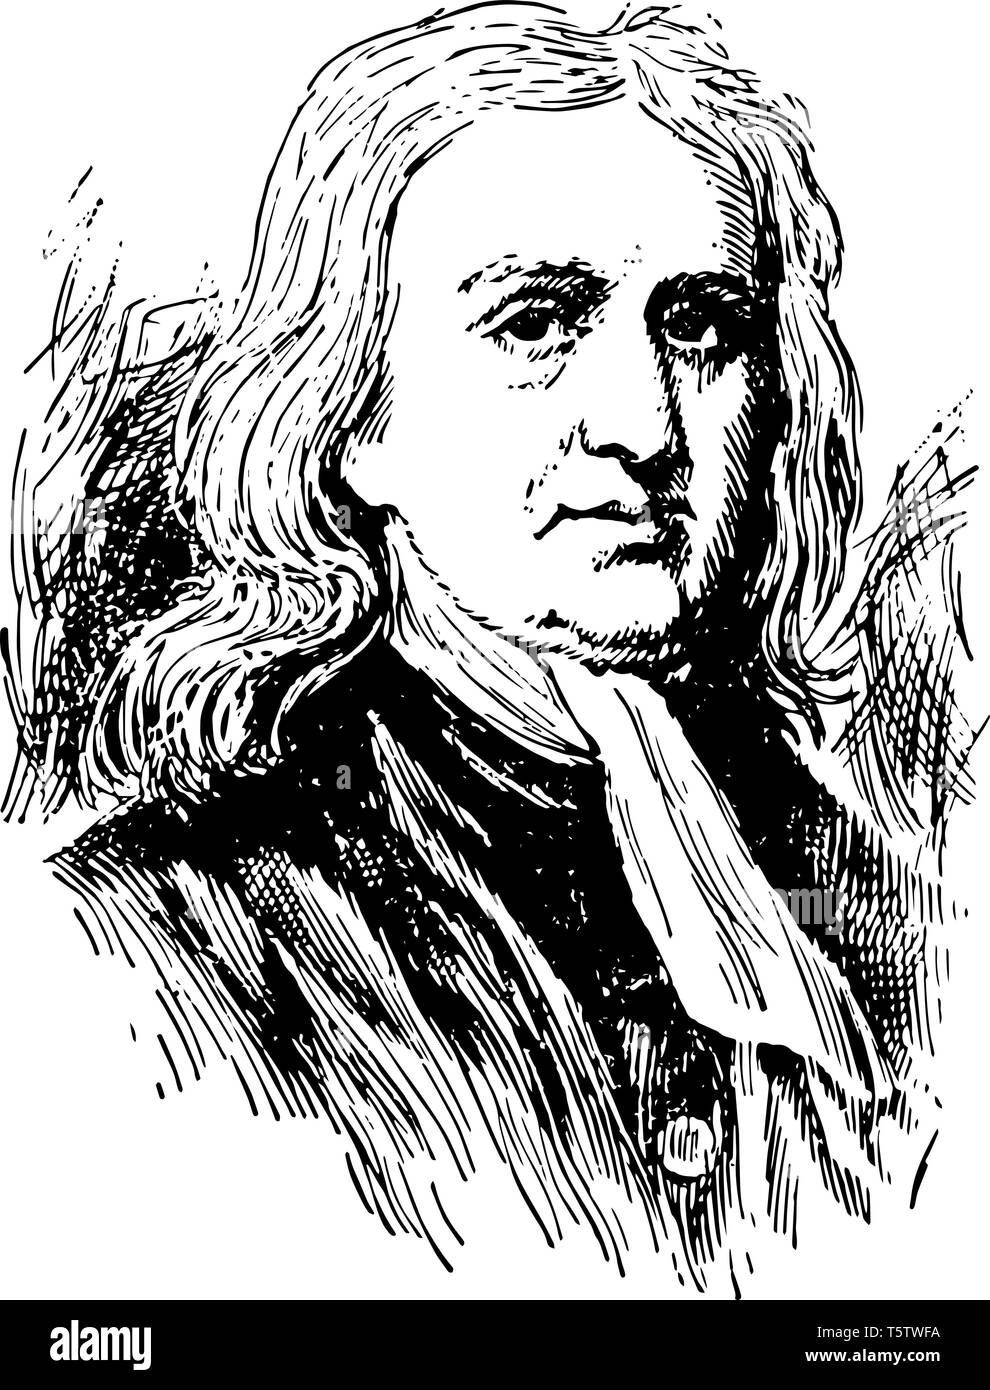 Sir Isaac Newton 1642 to 1727 he was an English mathematician astronomer and physicist who discovered the law of gravitation vintage line drawing or e - Stock Vector